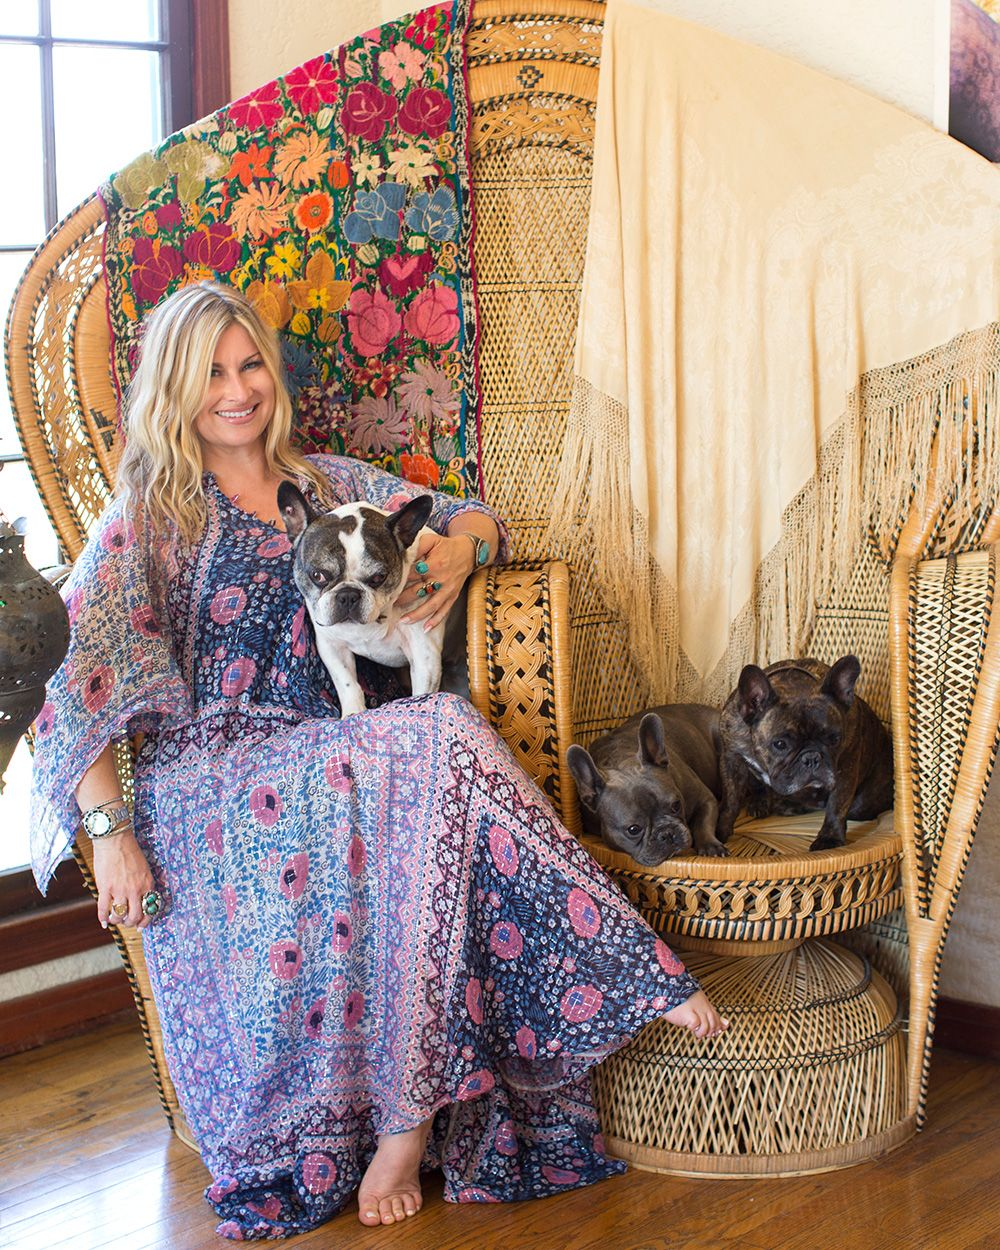 Vanessa's Vintage Bohemian Hilltop Home - OK this is a house tour, but really I want that dress.